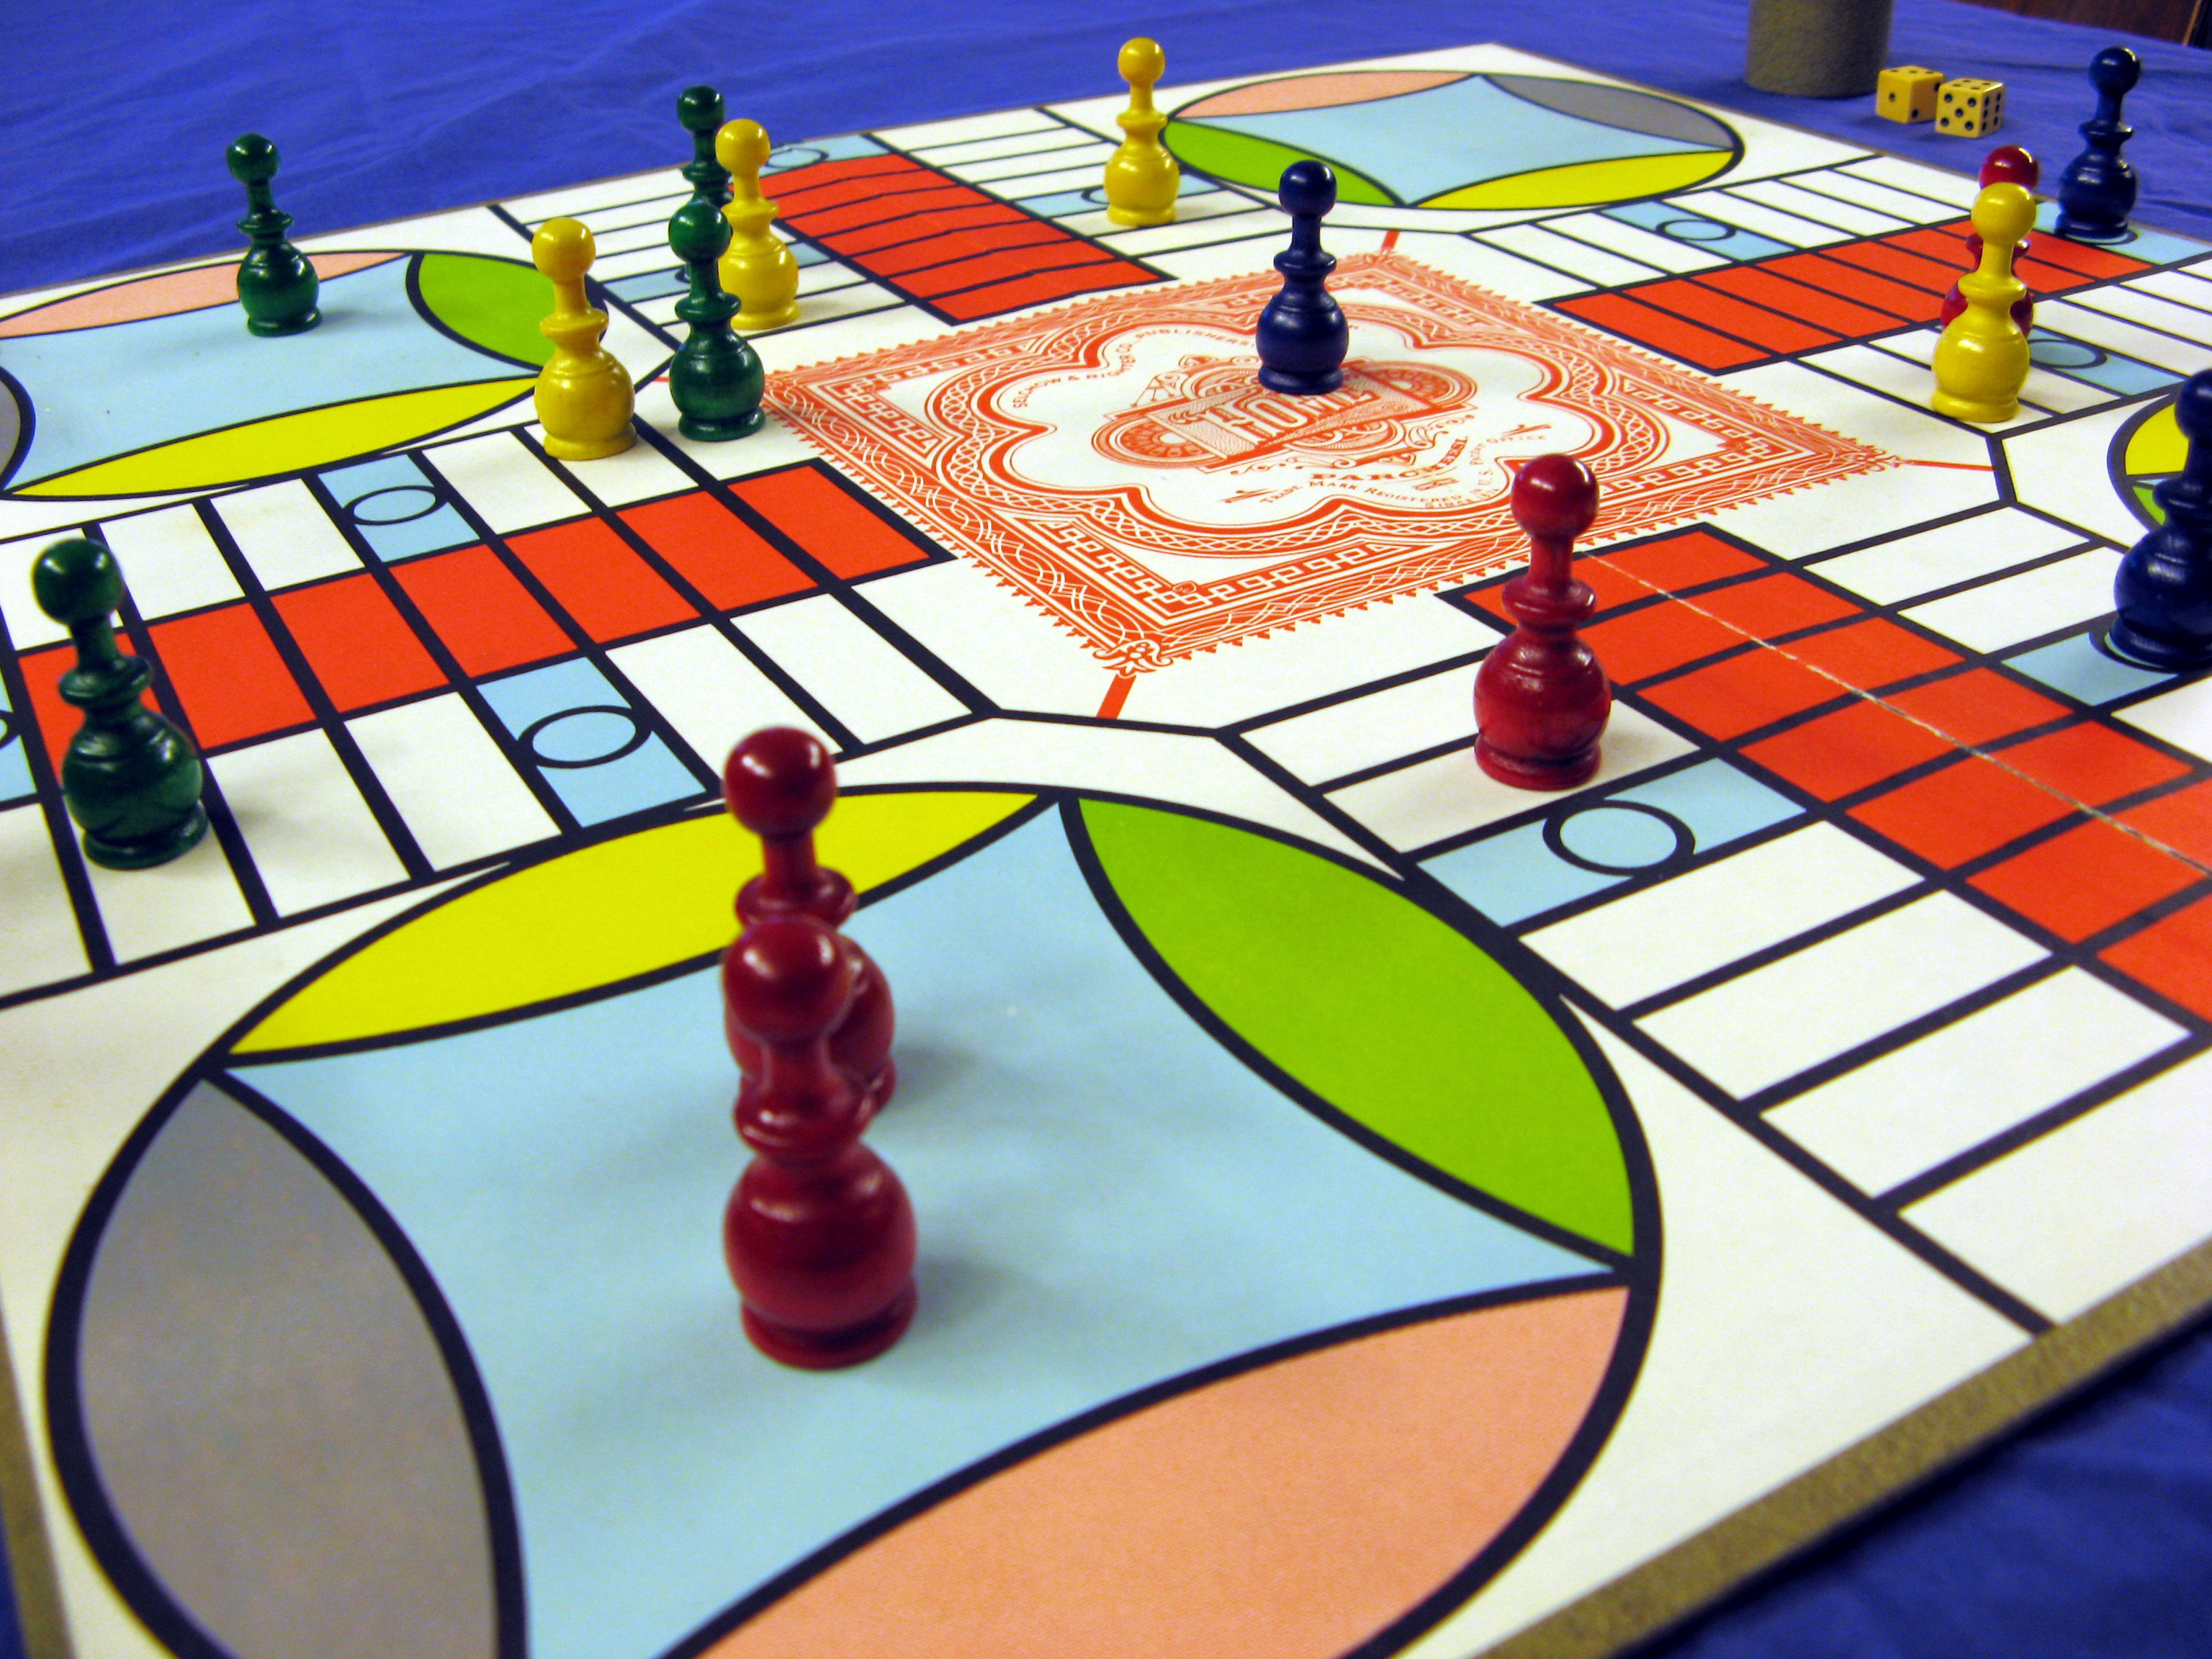 50 Greatest Card Games and Board Games of All Time Parcheesi is based on an Indian game that dates back as far as 500 AD that  was adapted for American audiences by Parker Brothers  According to  Wikipedia the